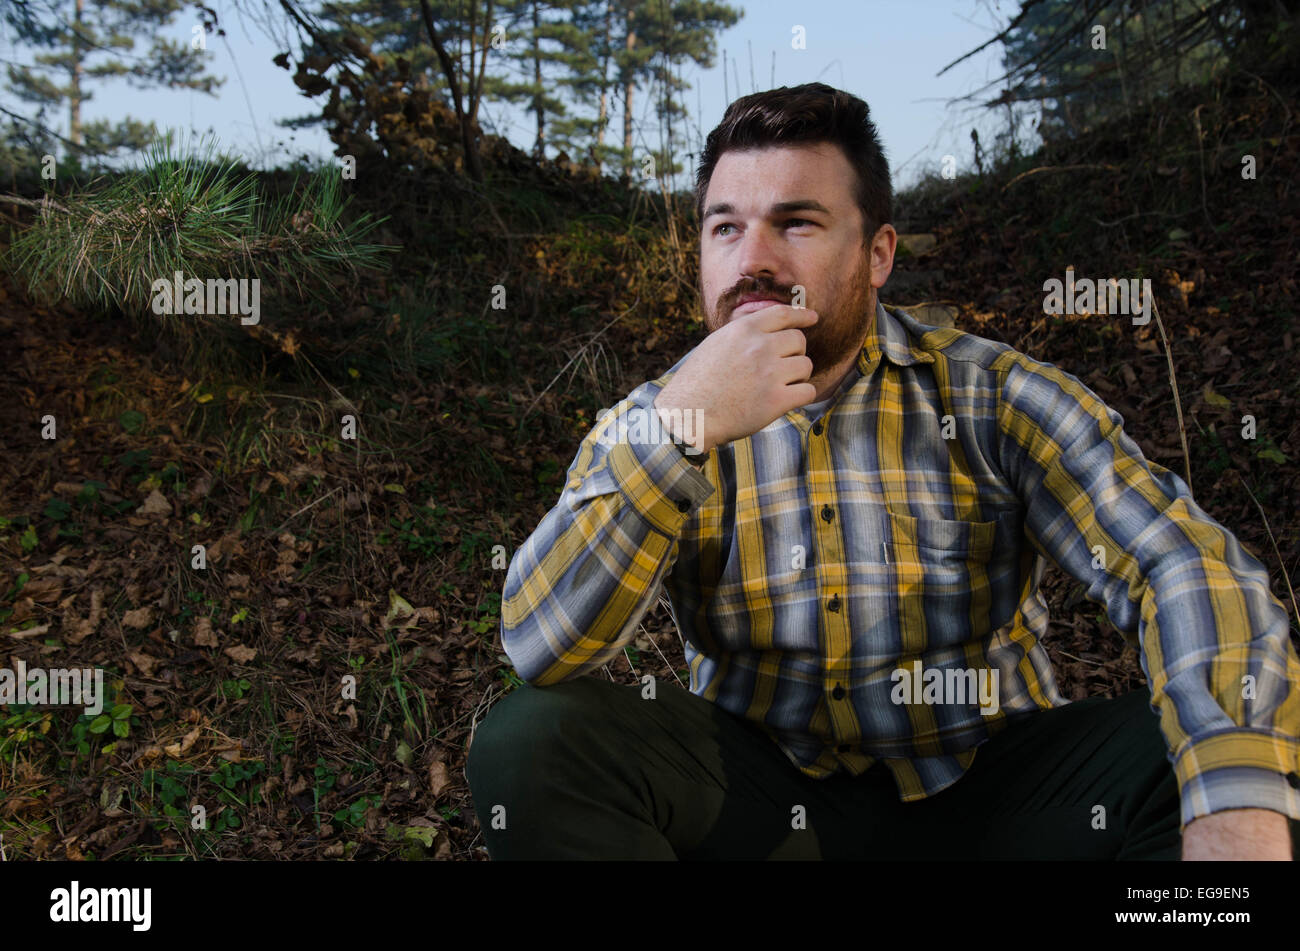 Young man contemplating in forest - Stock Image